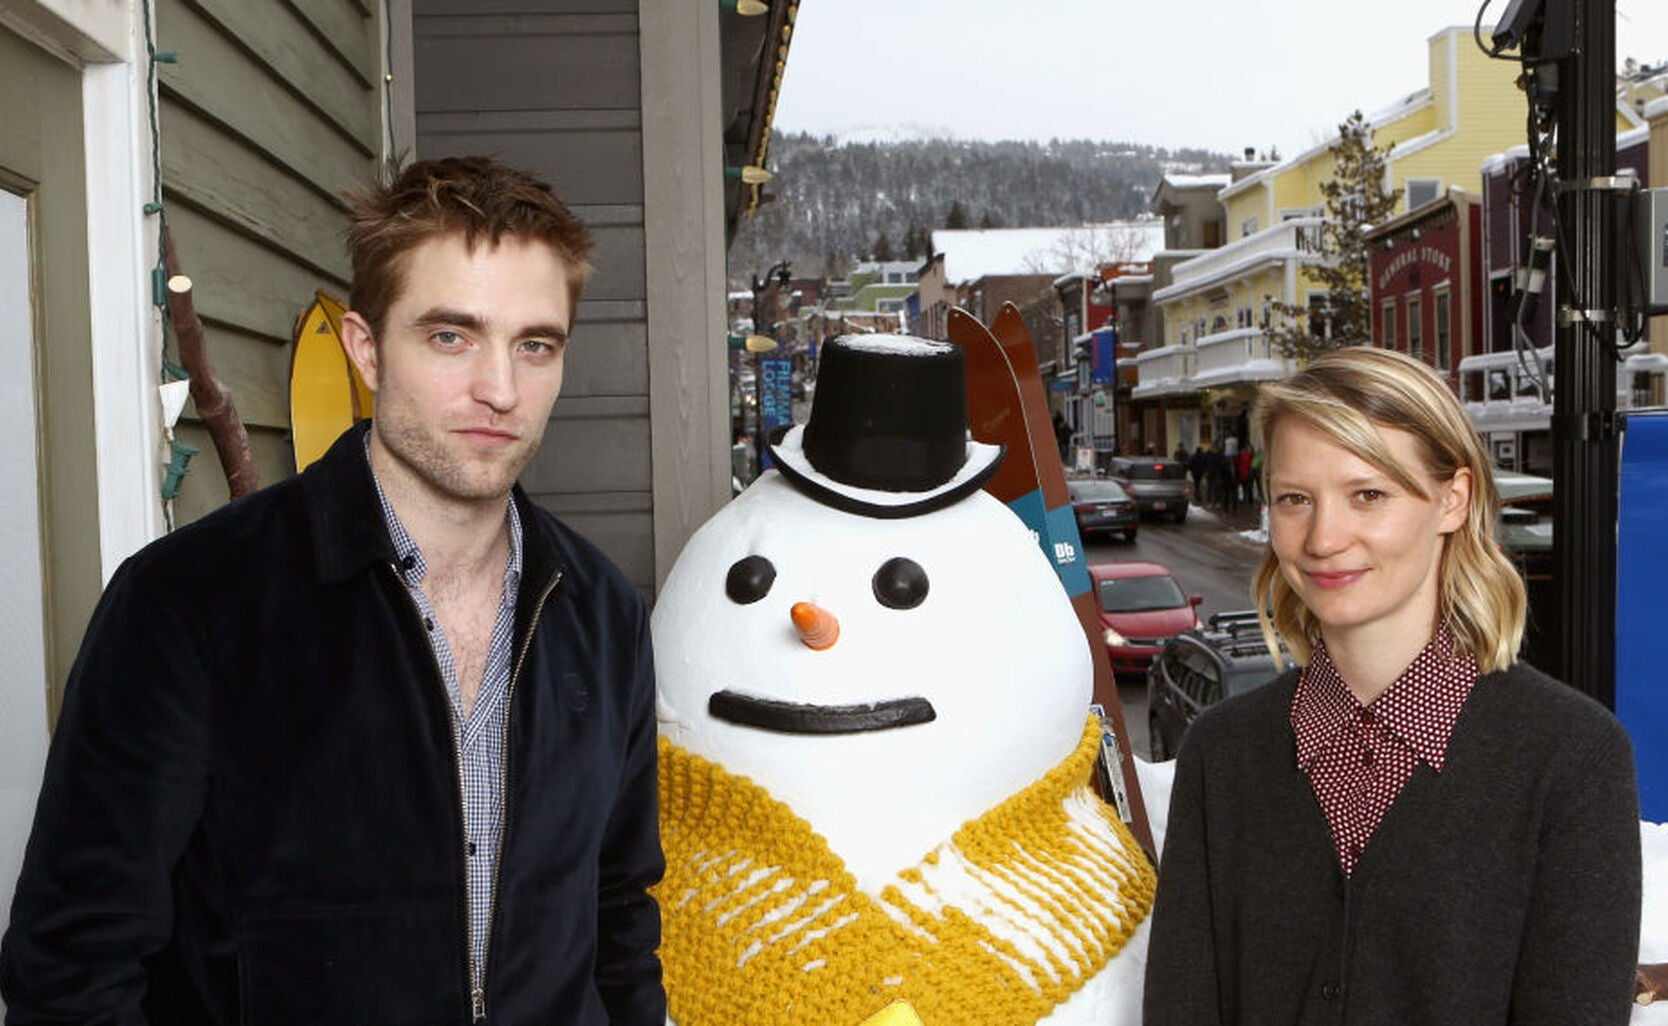 Actors Robert Pattinson and Mia Wasikowska